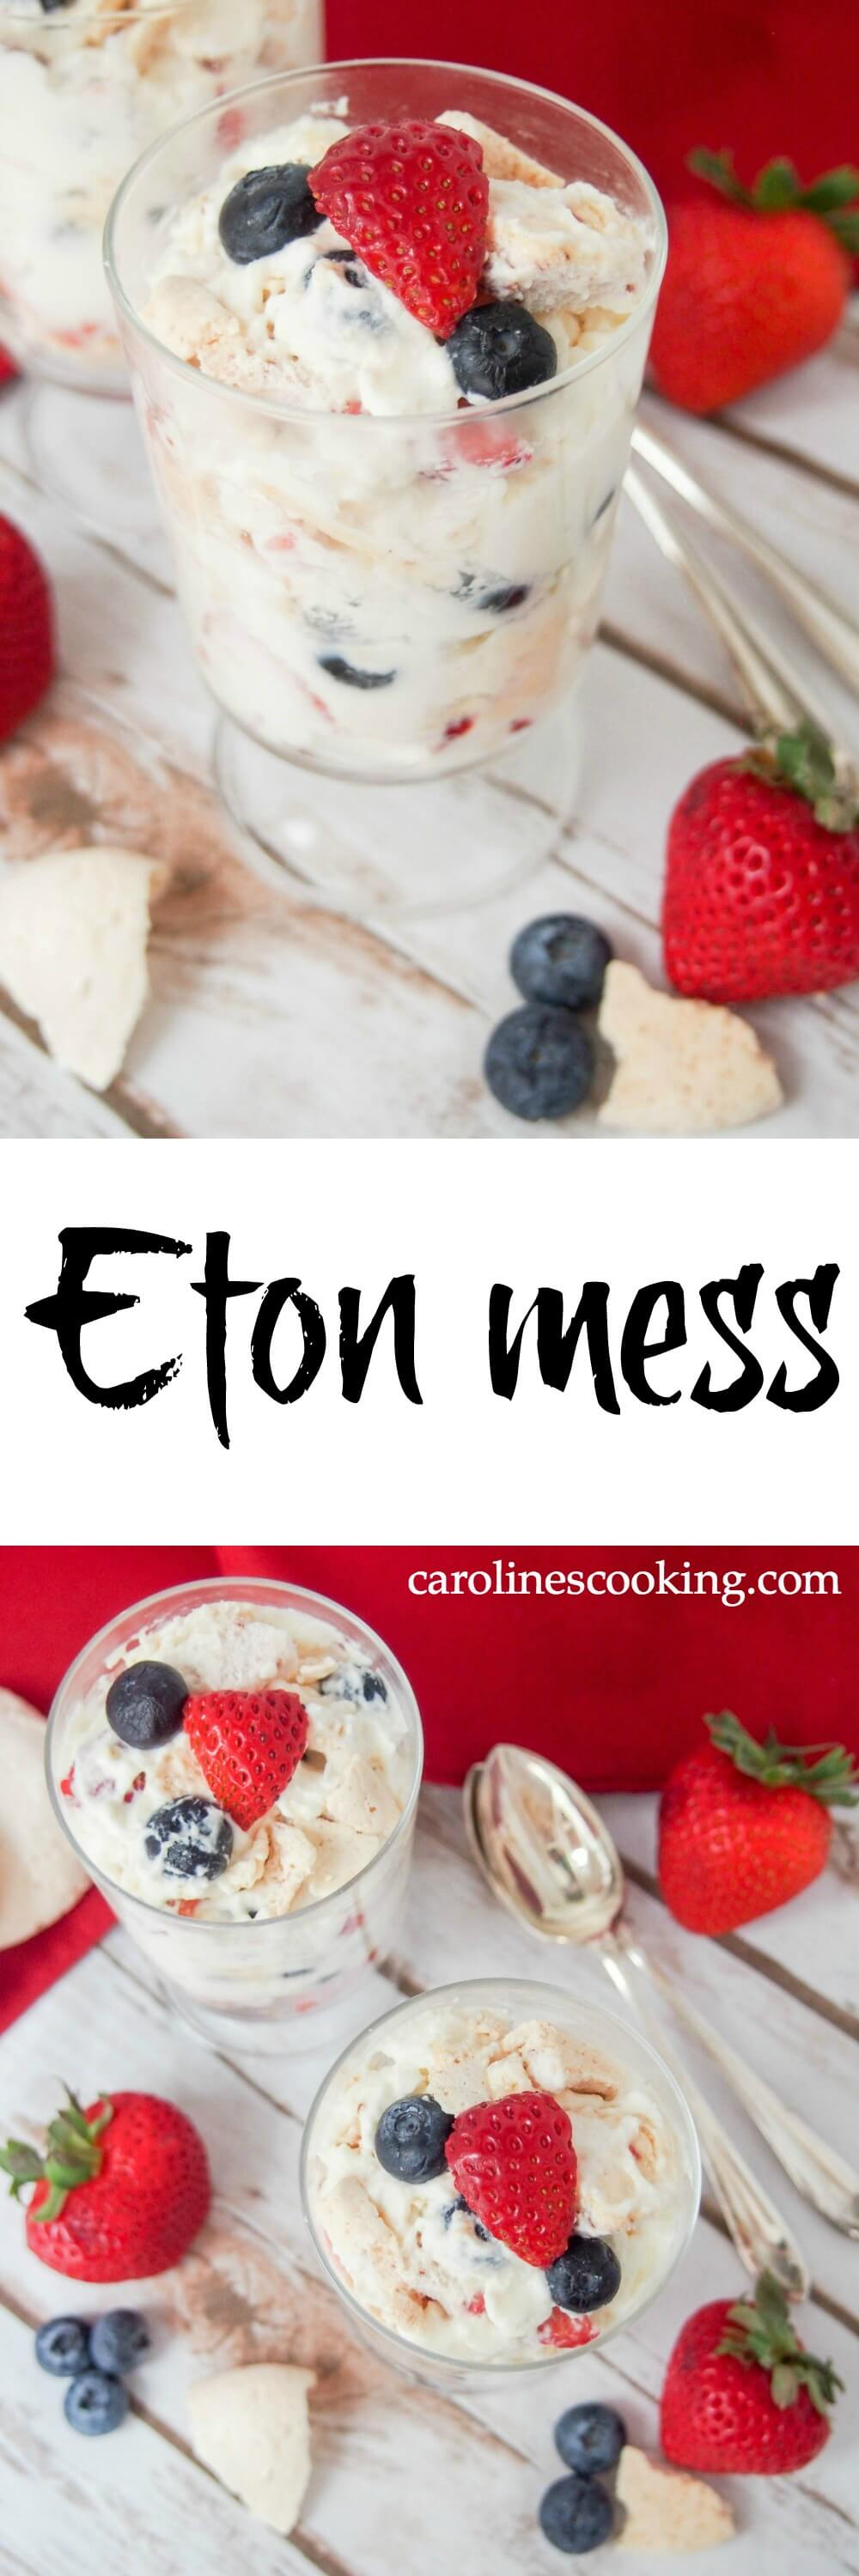 Eton mess is a classic British dessert that is incredibly easy to prepare - simply fruit, cream and meringue mixed together - but the result is so delicious. It's perfect for a spring/summer party, and quick enough to put together any night of the week for an easy treat. And conveniently red, white and blue as well! #memorialday #dessert #redwhiteandblue #meringue #cream #easydessert